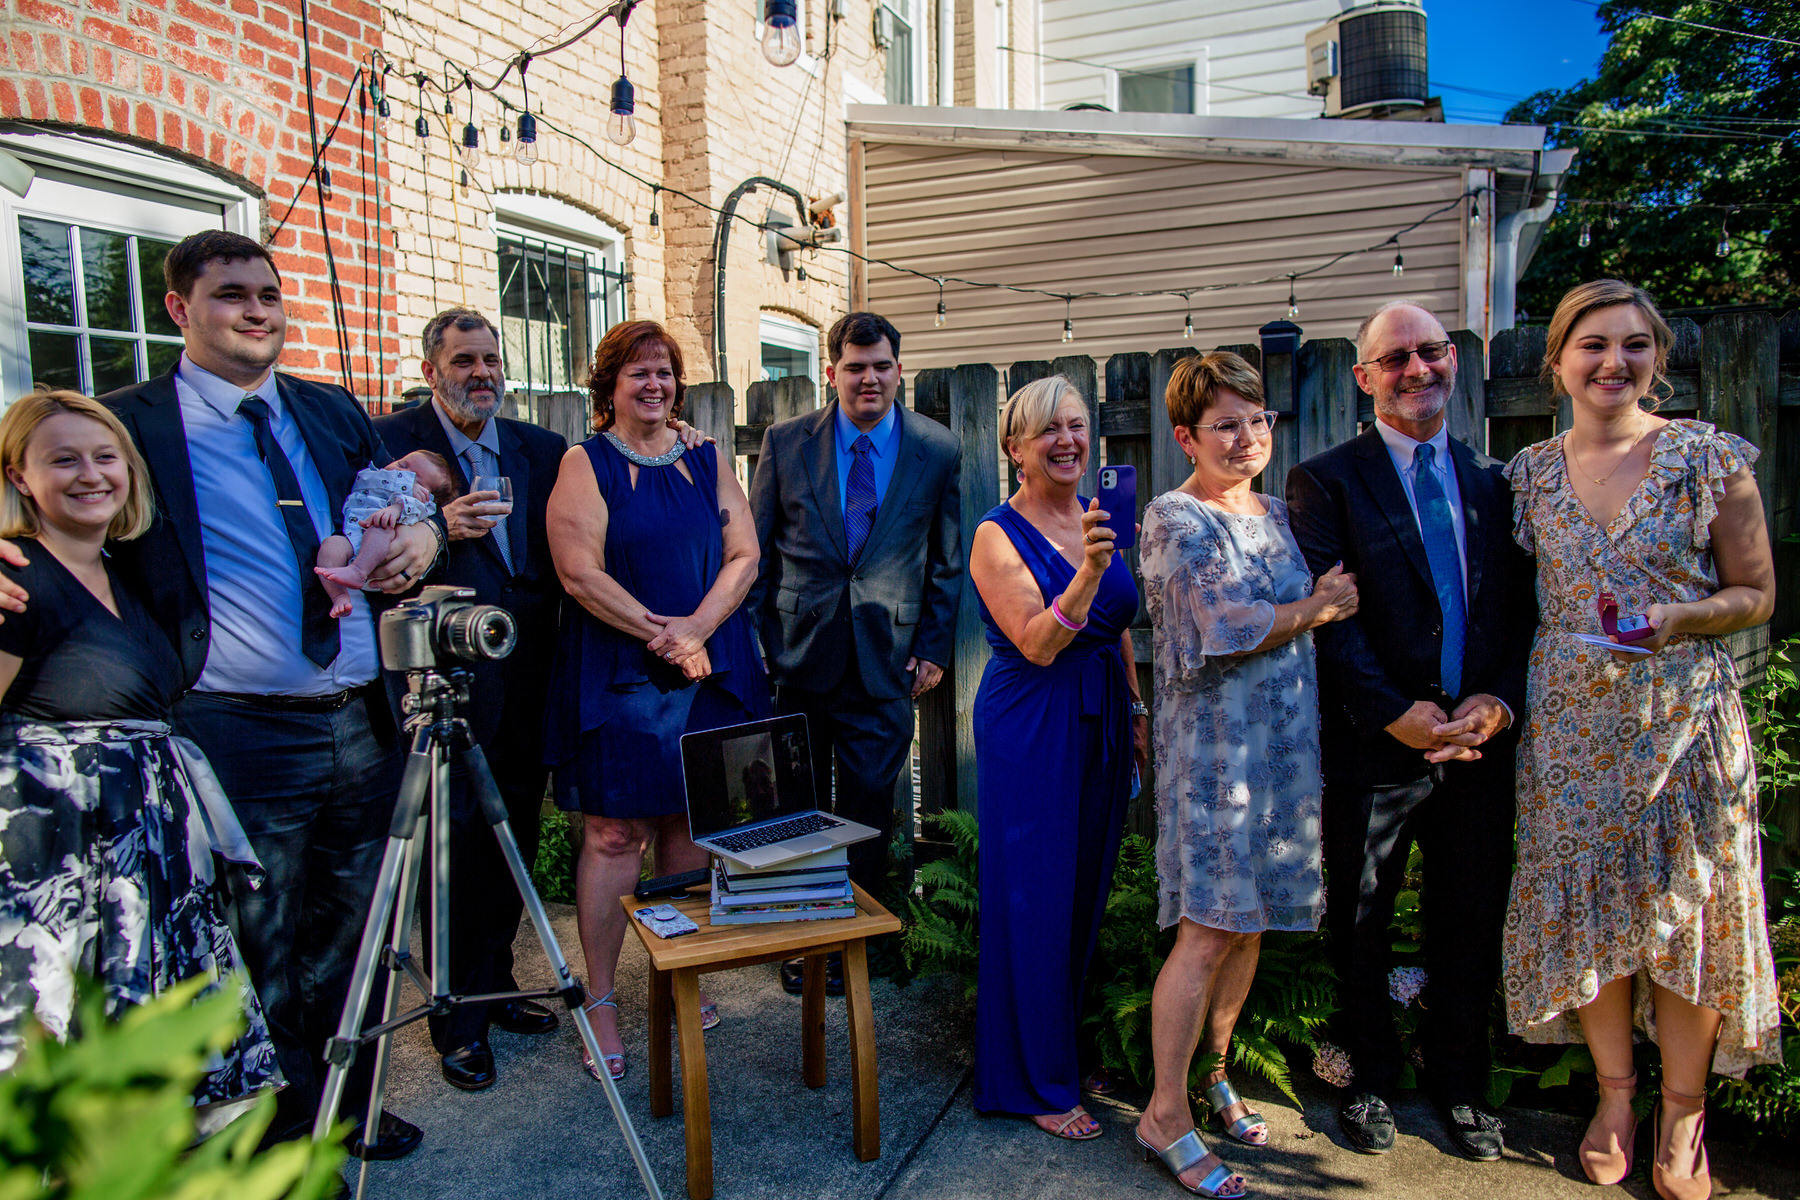 Weddings and Event Photography in Washington, DC | The family is ready to assist the elopement